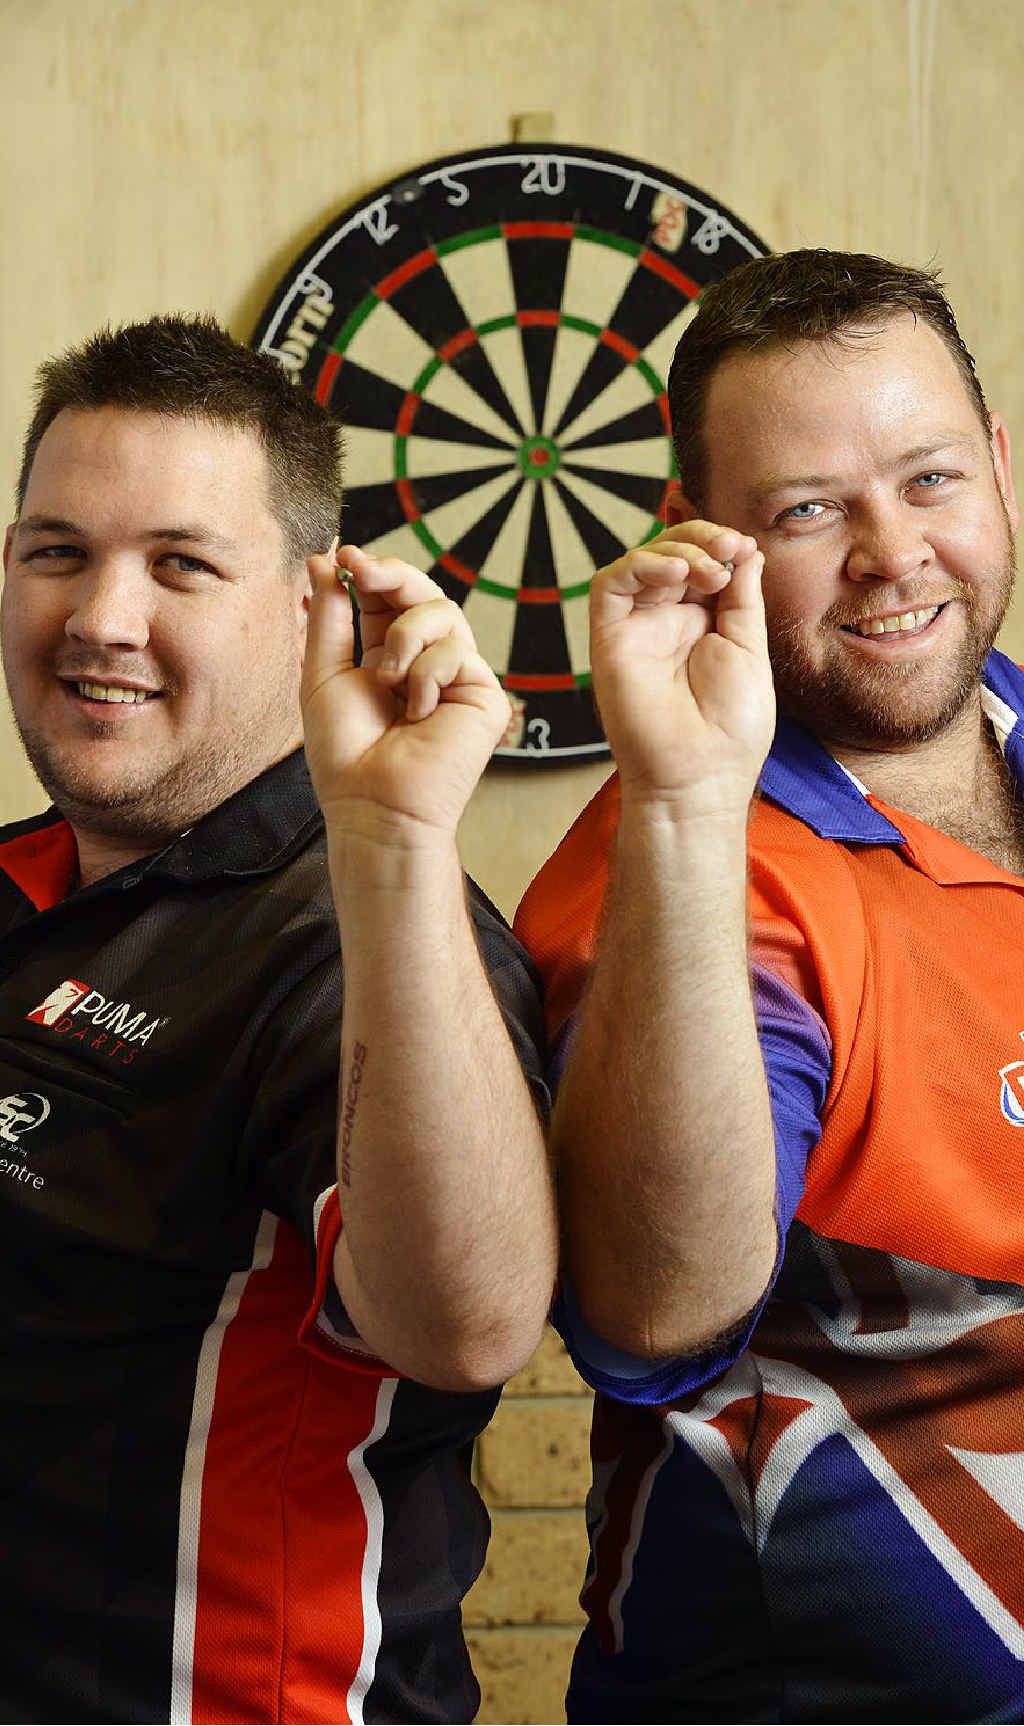 NO BULL: Brothers Jamie and Gordon Mathers recently competed in the Sydney masters. Gordon is ranked number 2 in Australia.